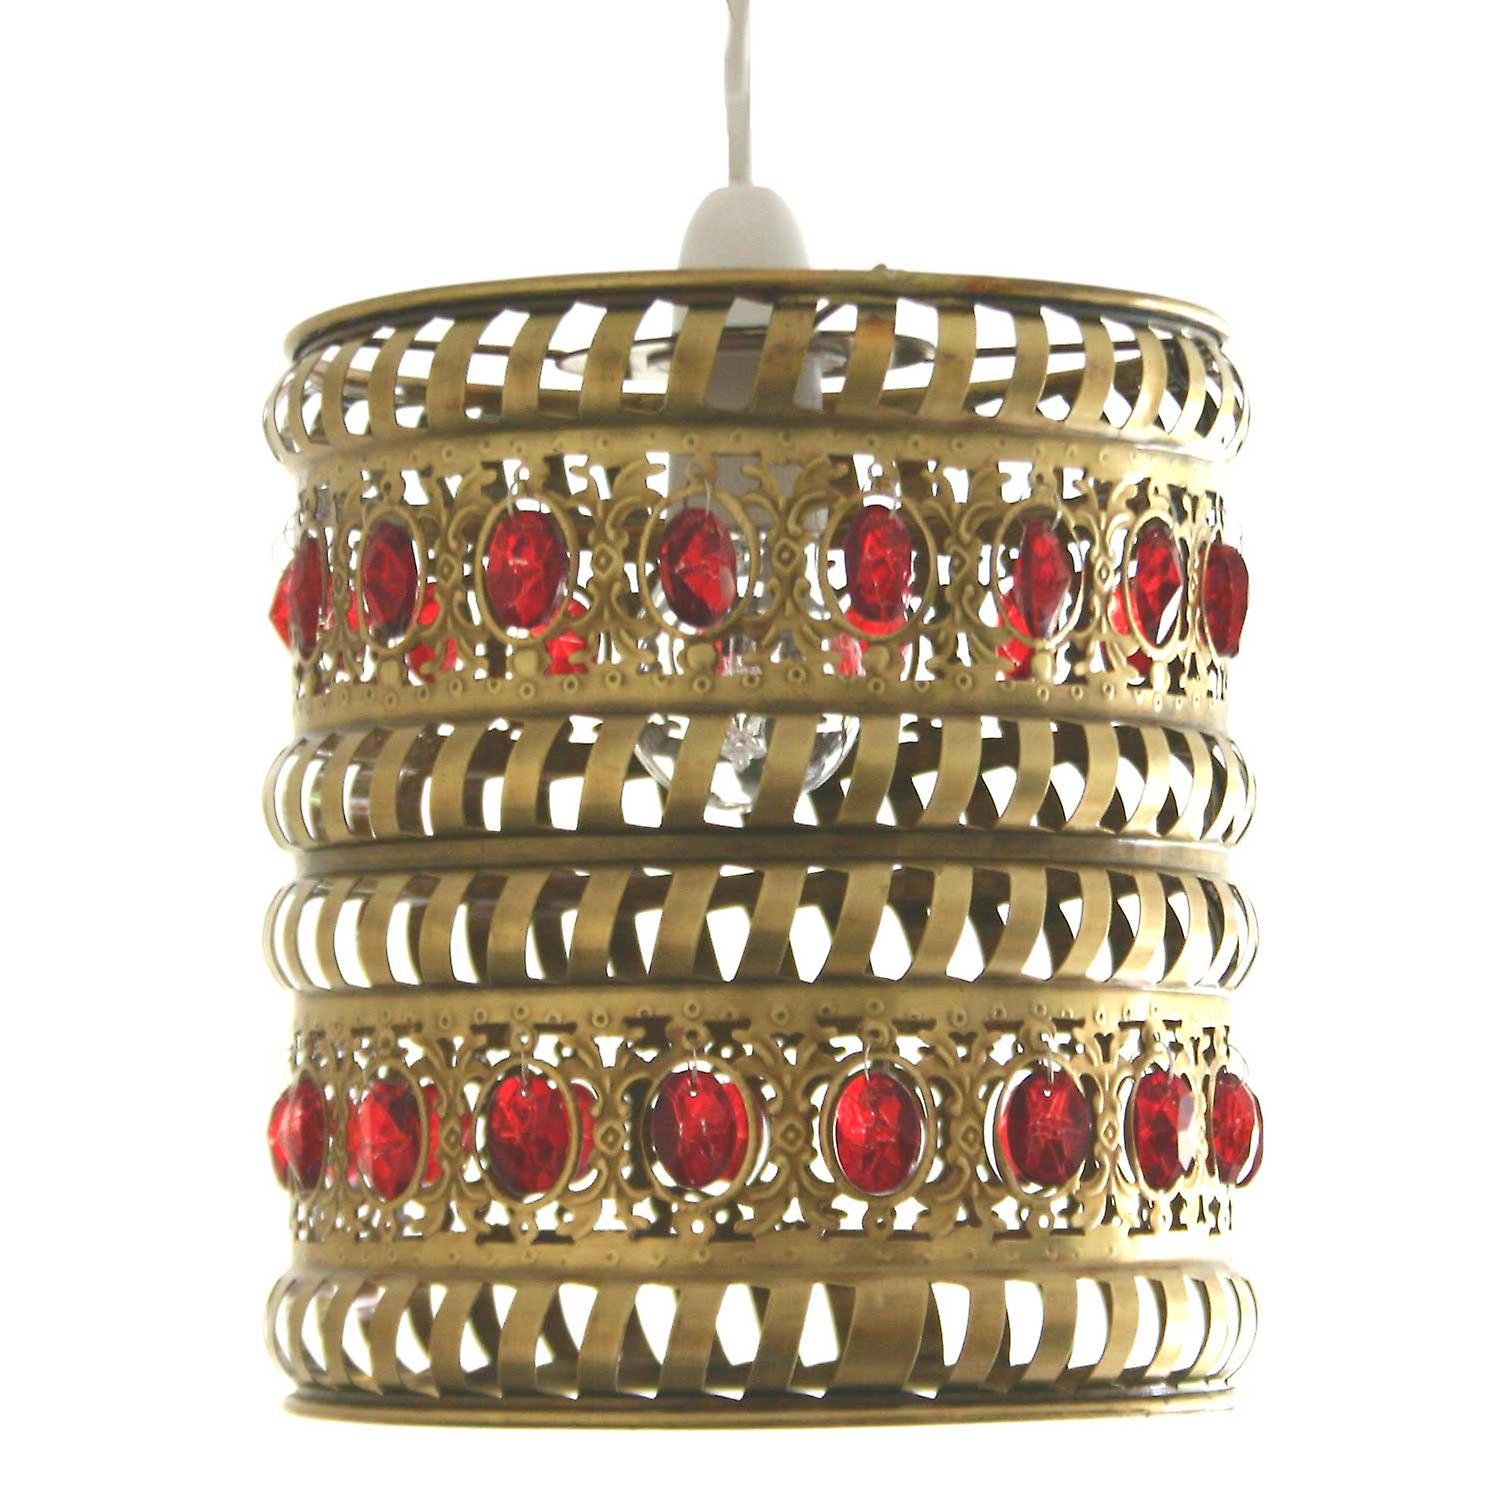 Moroccan Pendant Shade - Red Jewels & Antique Brass